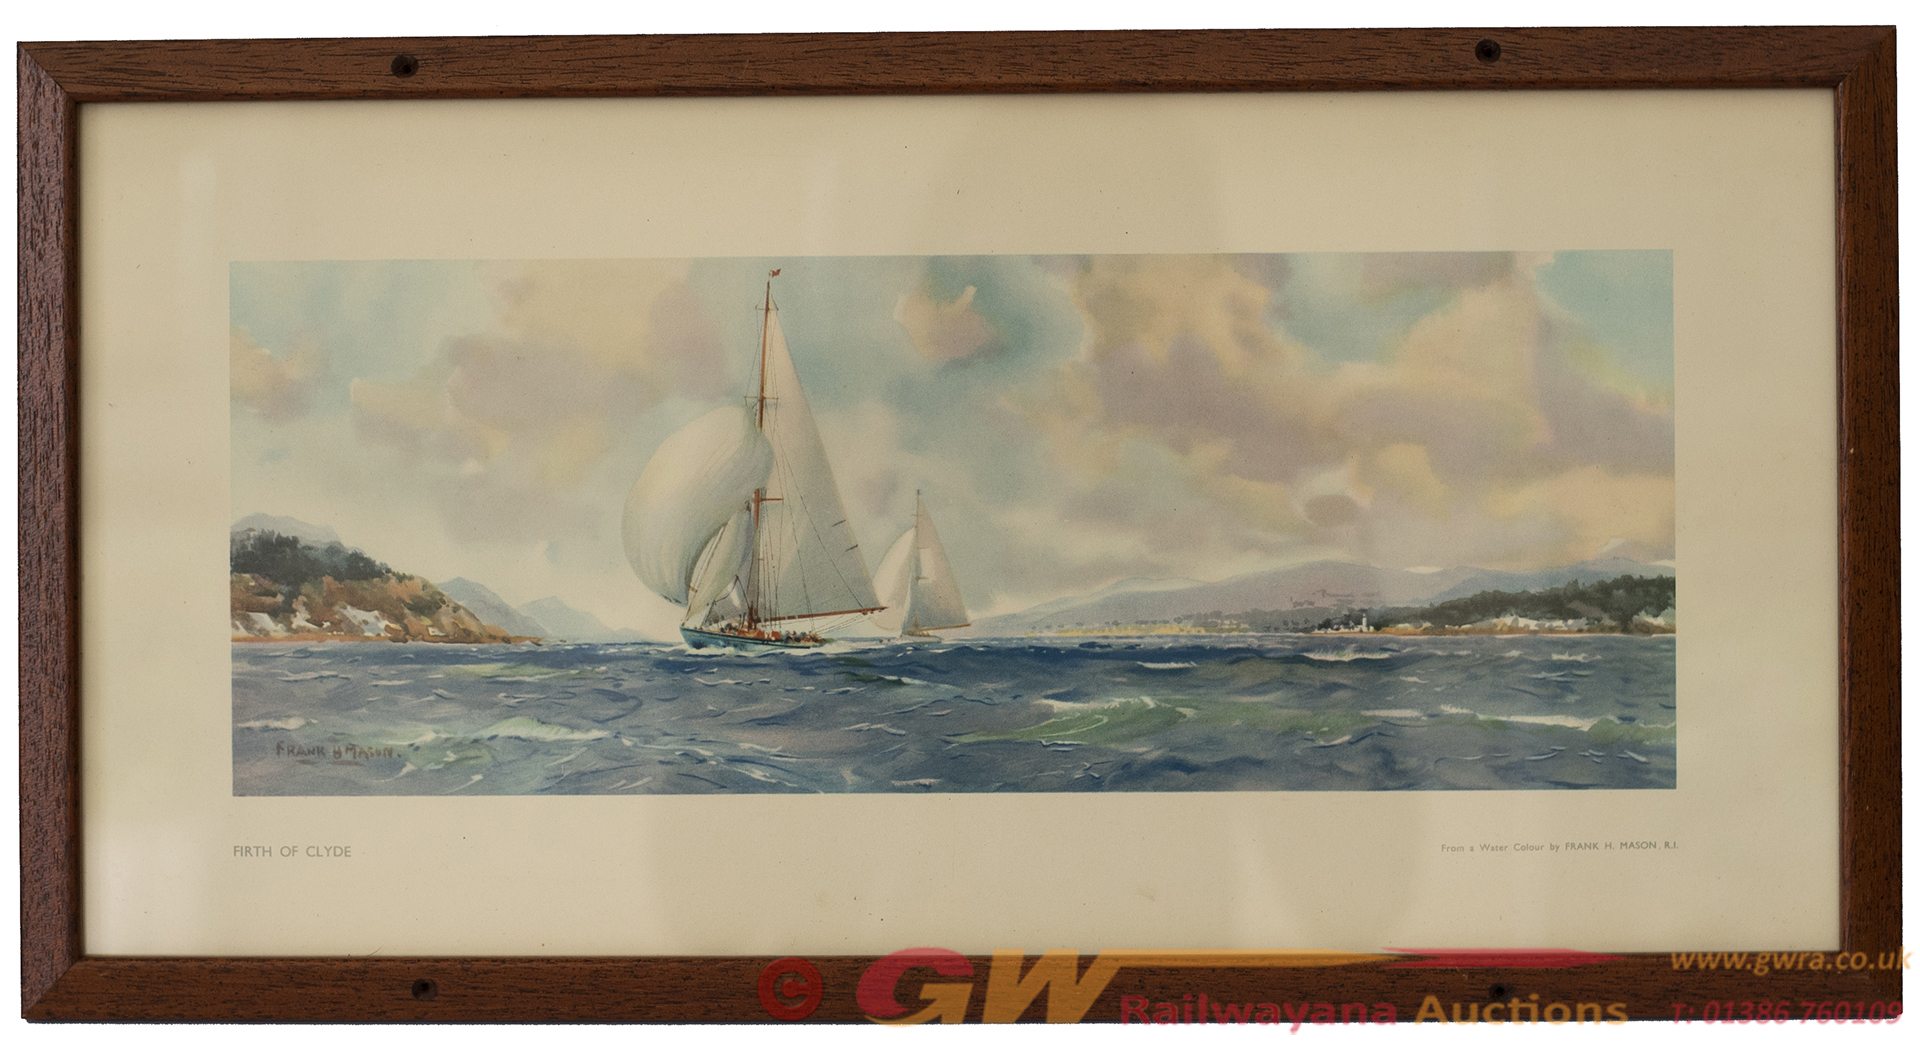 Carriage Print FIRTH OF CLYDE By Frank H Mason